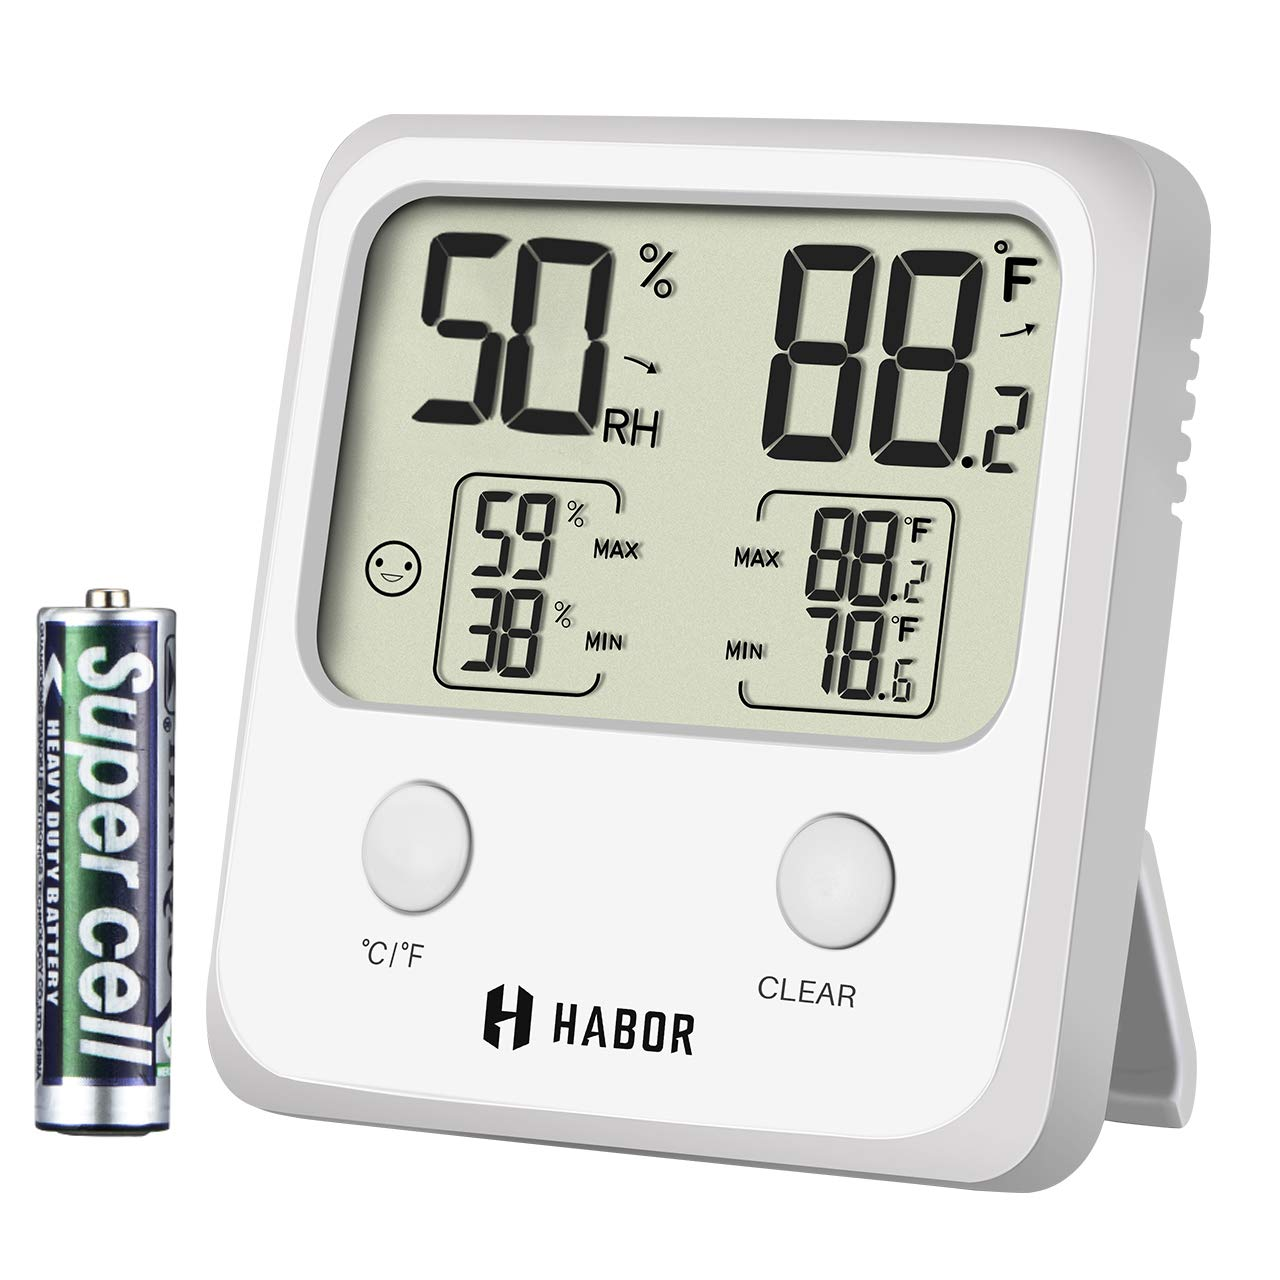 Habor Upgraded Digital Indoor Hygrometer Large LCD Screen Temperature Humidity Monitor, High Accuracy Room Thermometer Home Office Greenhouse Cellar, (3.3 X 3.2 Inch), White HPHBHM221AW